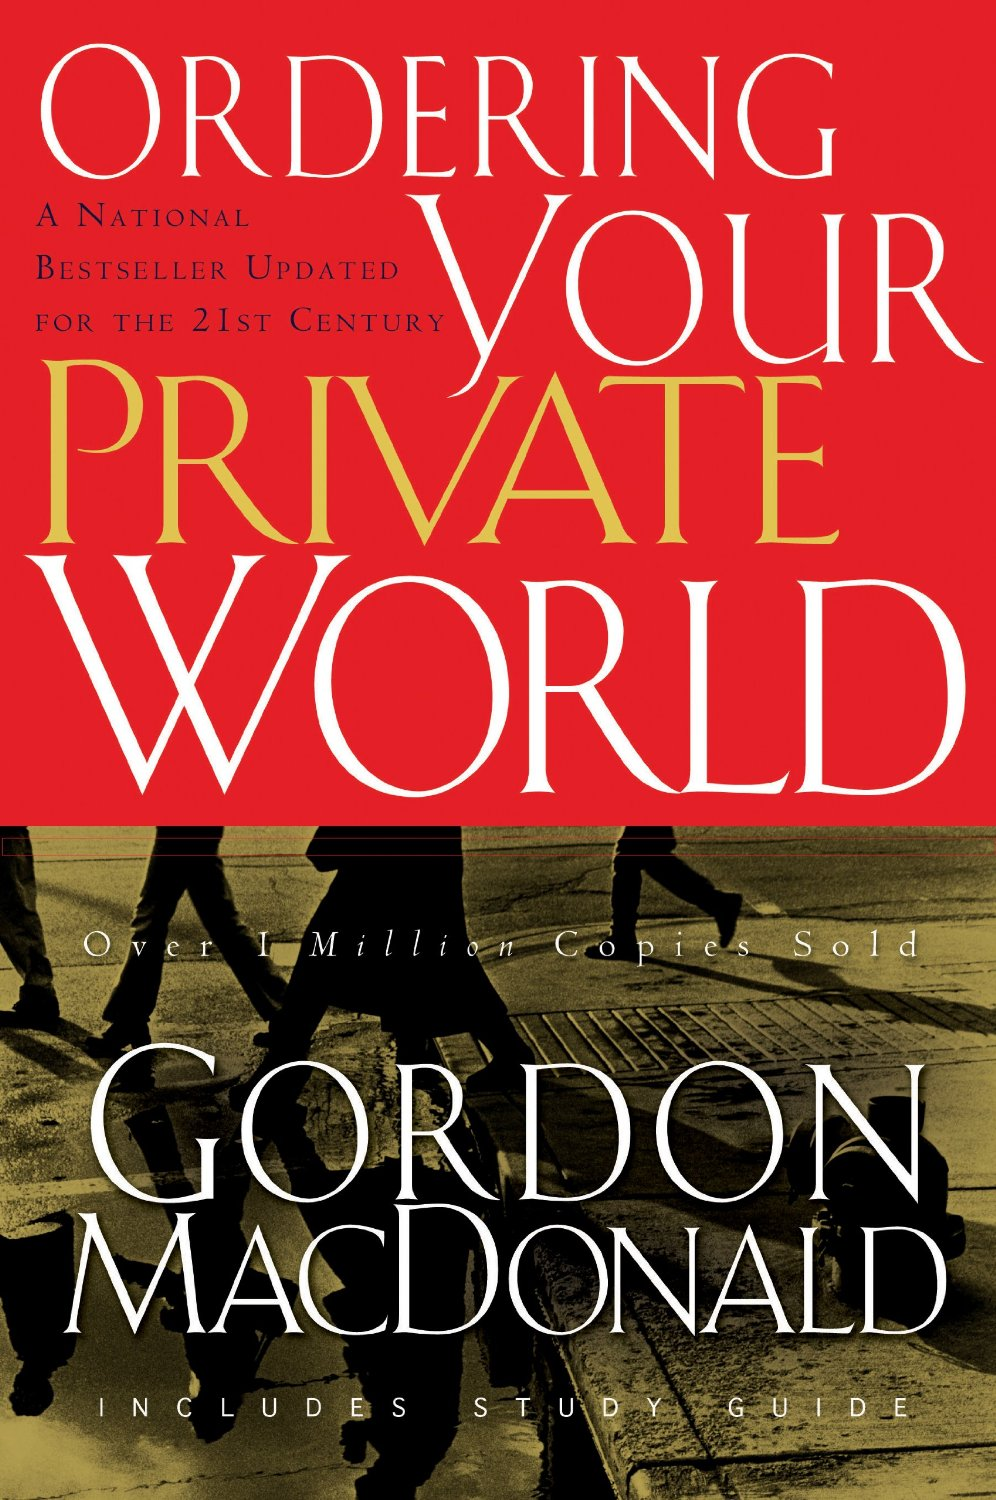 Ordering-Your-Private-World-new.jpg